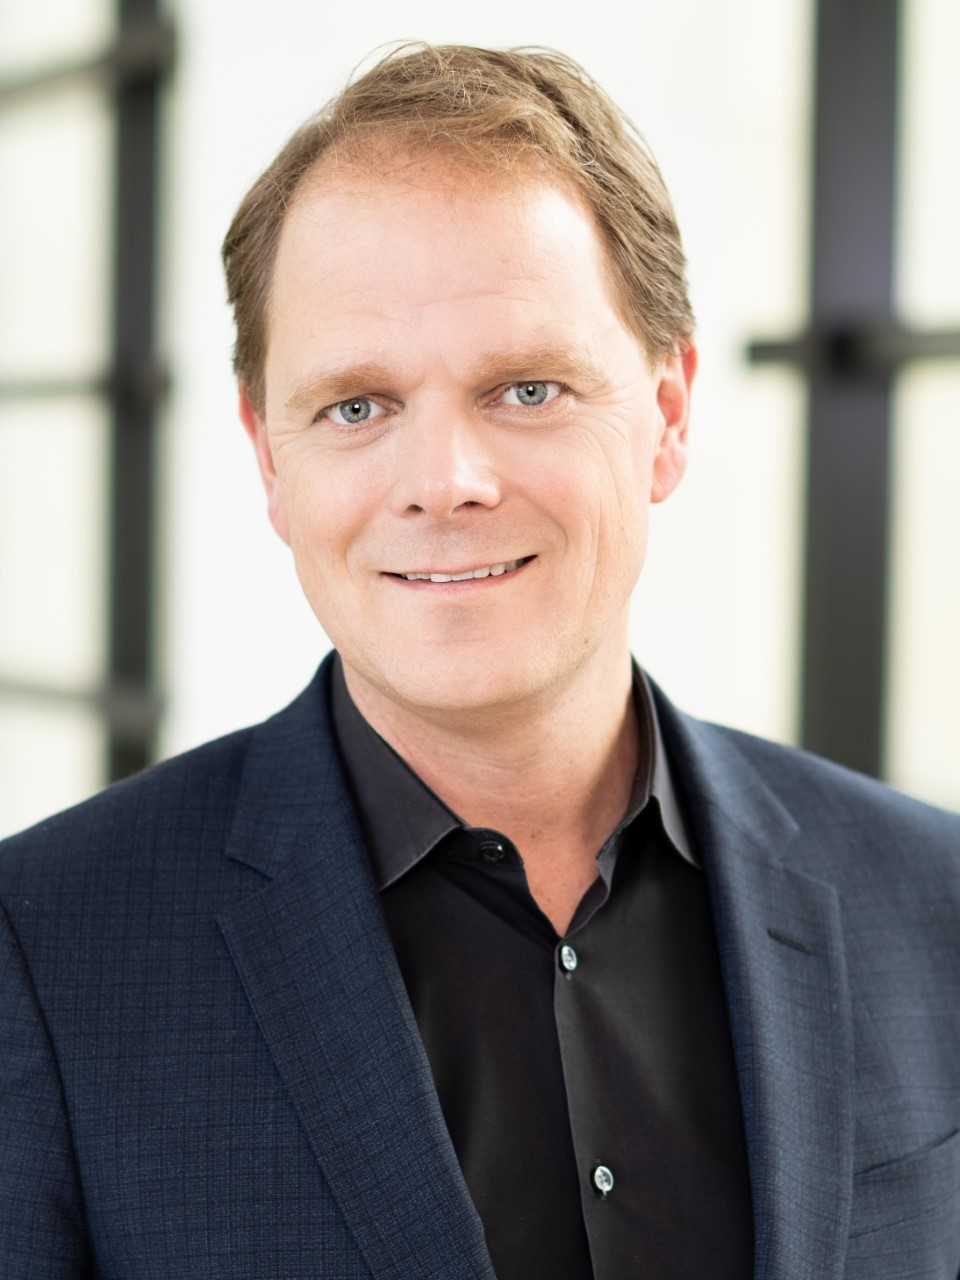 Portrait foto of Pascal Baltussen, the new Chief Procurement Officer at Coty